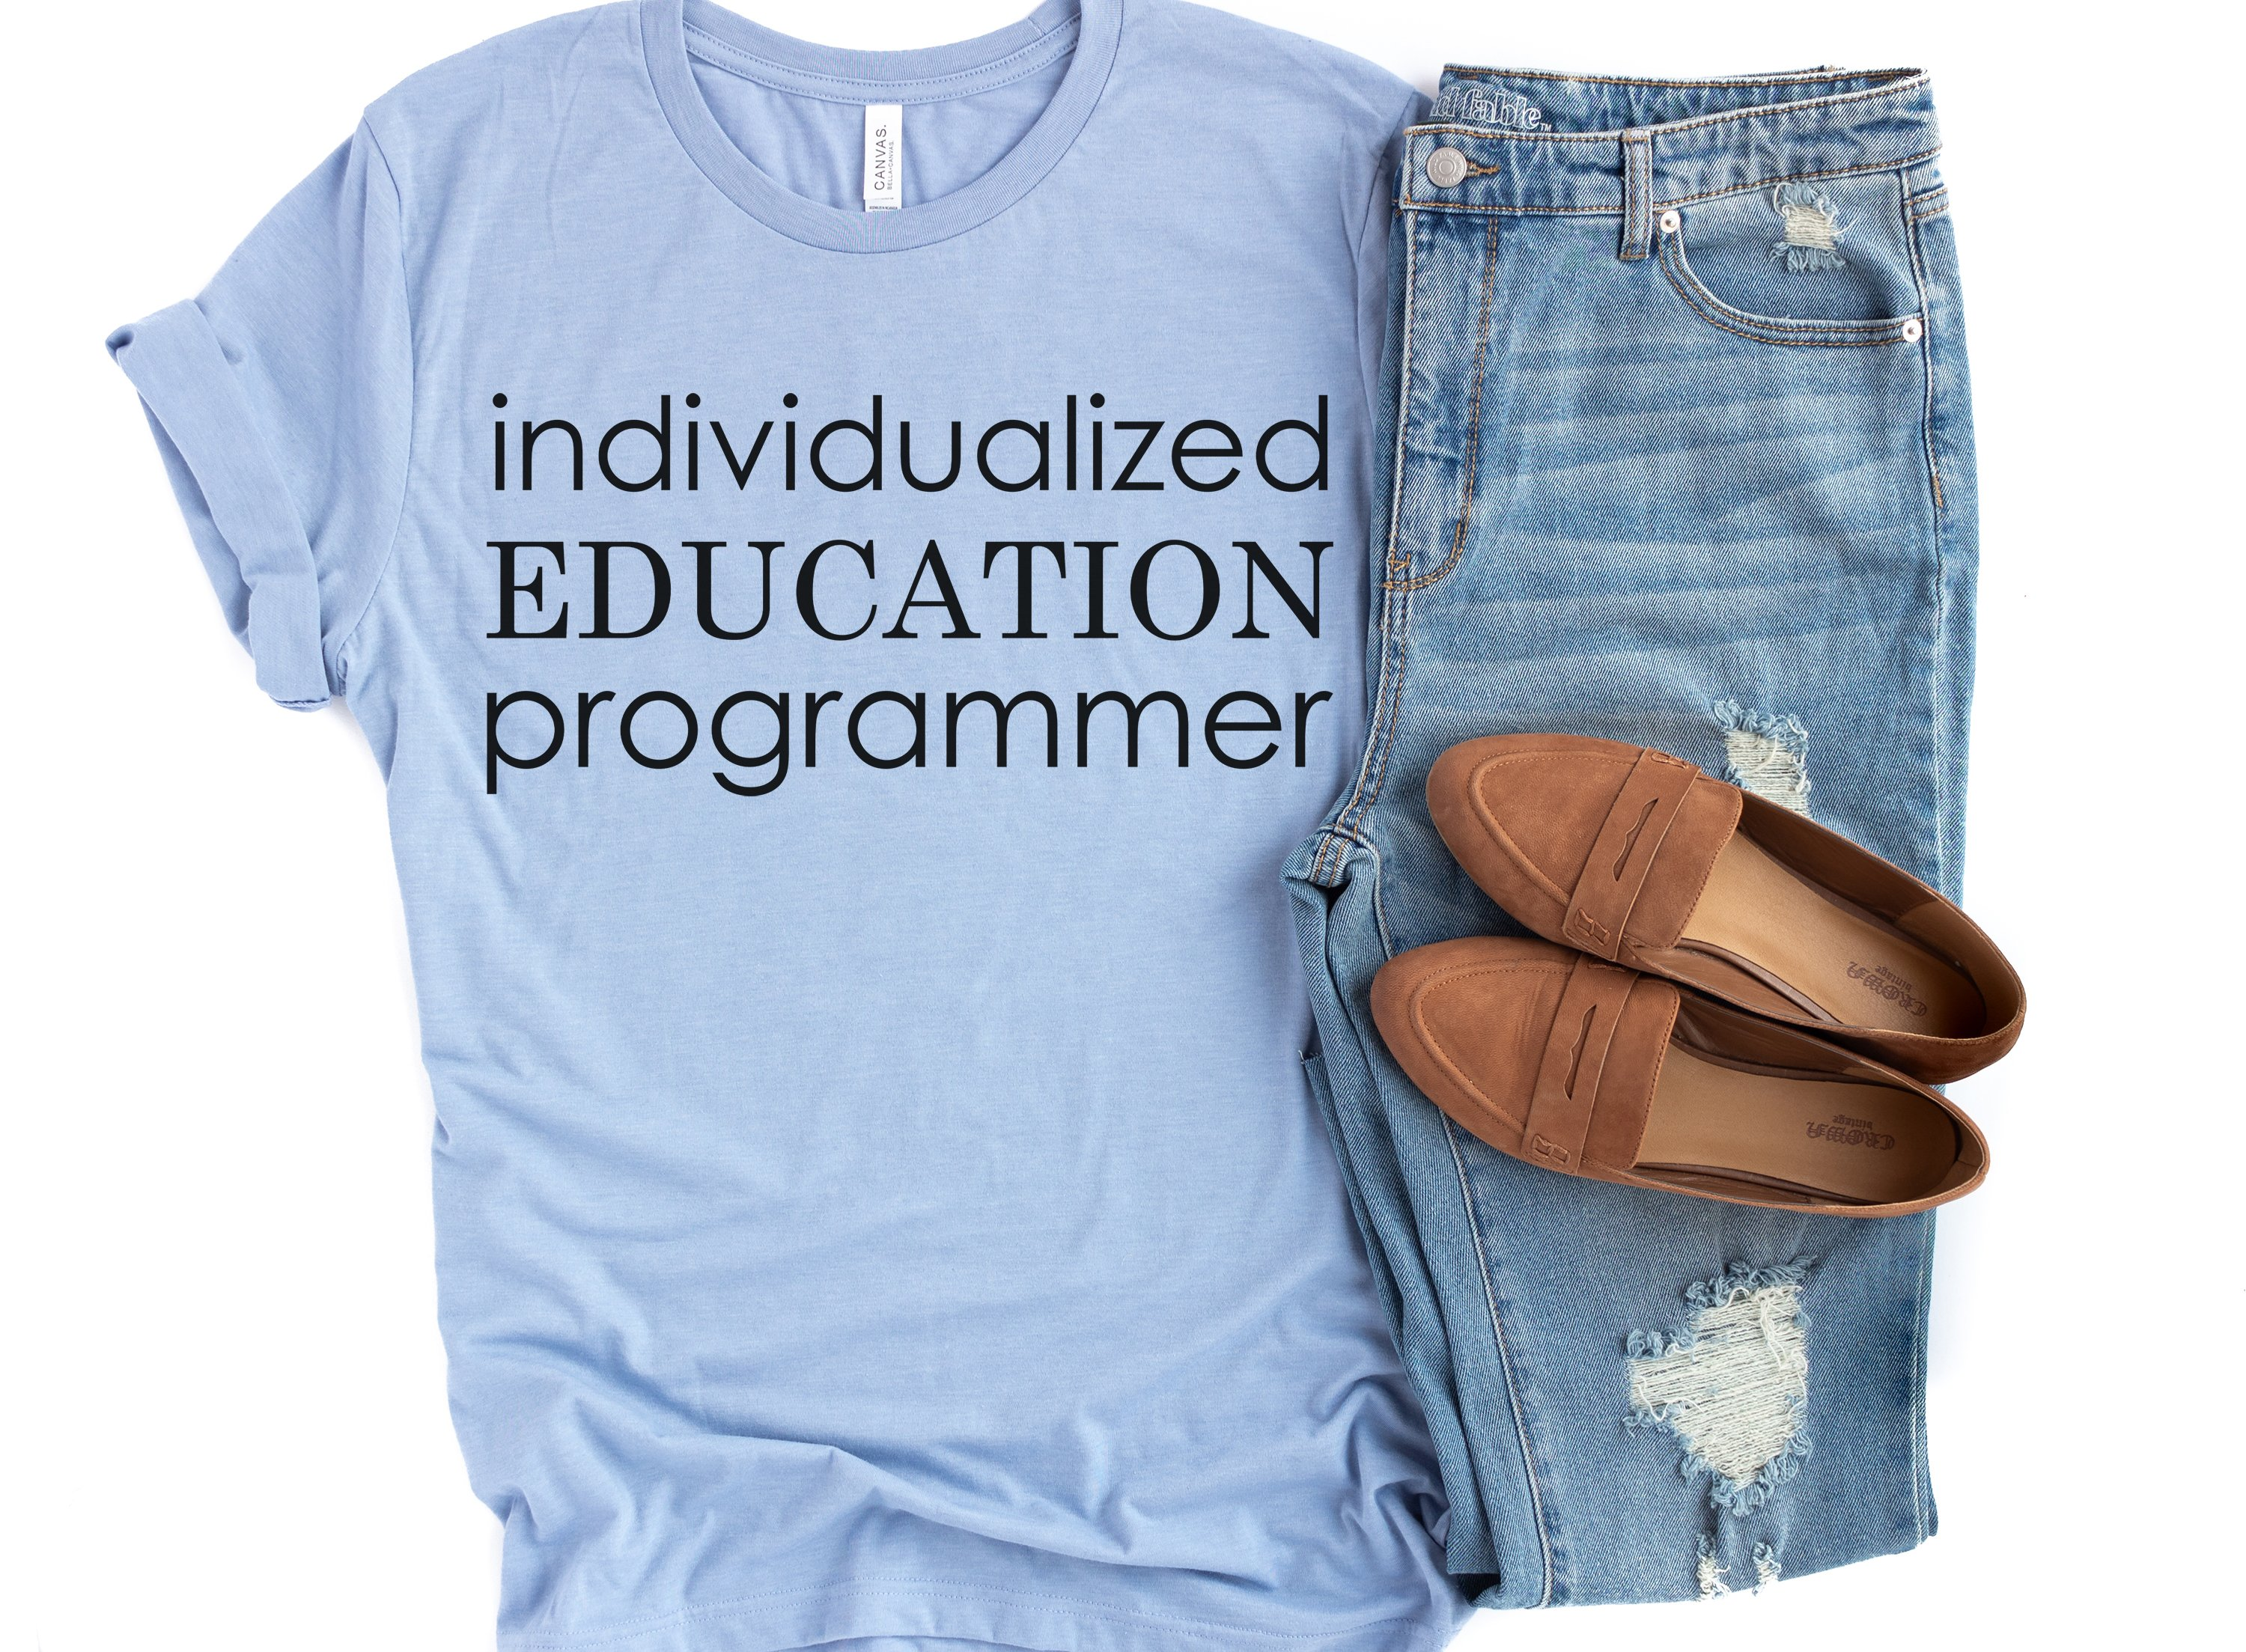 special ed shirts